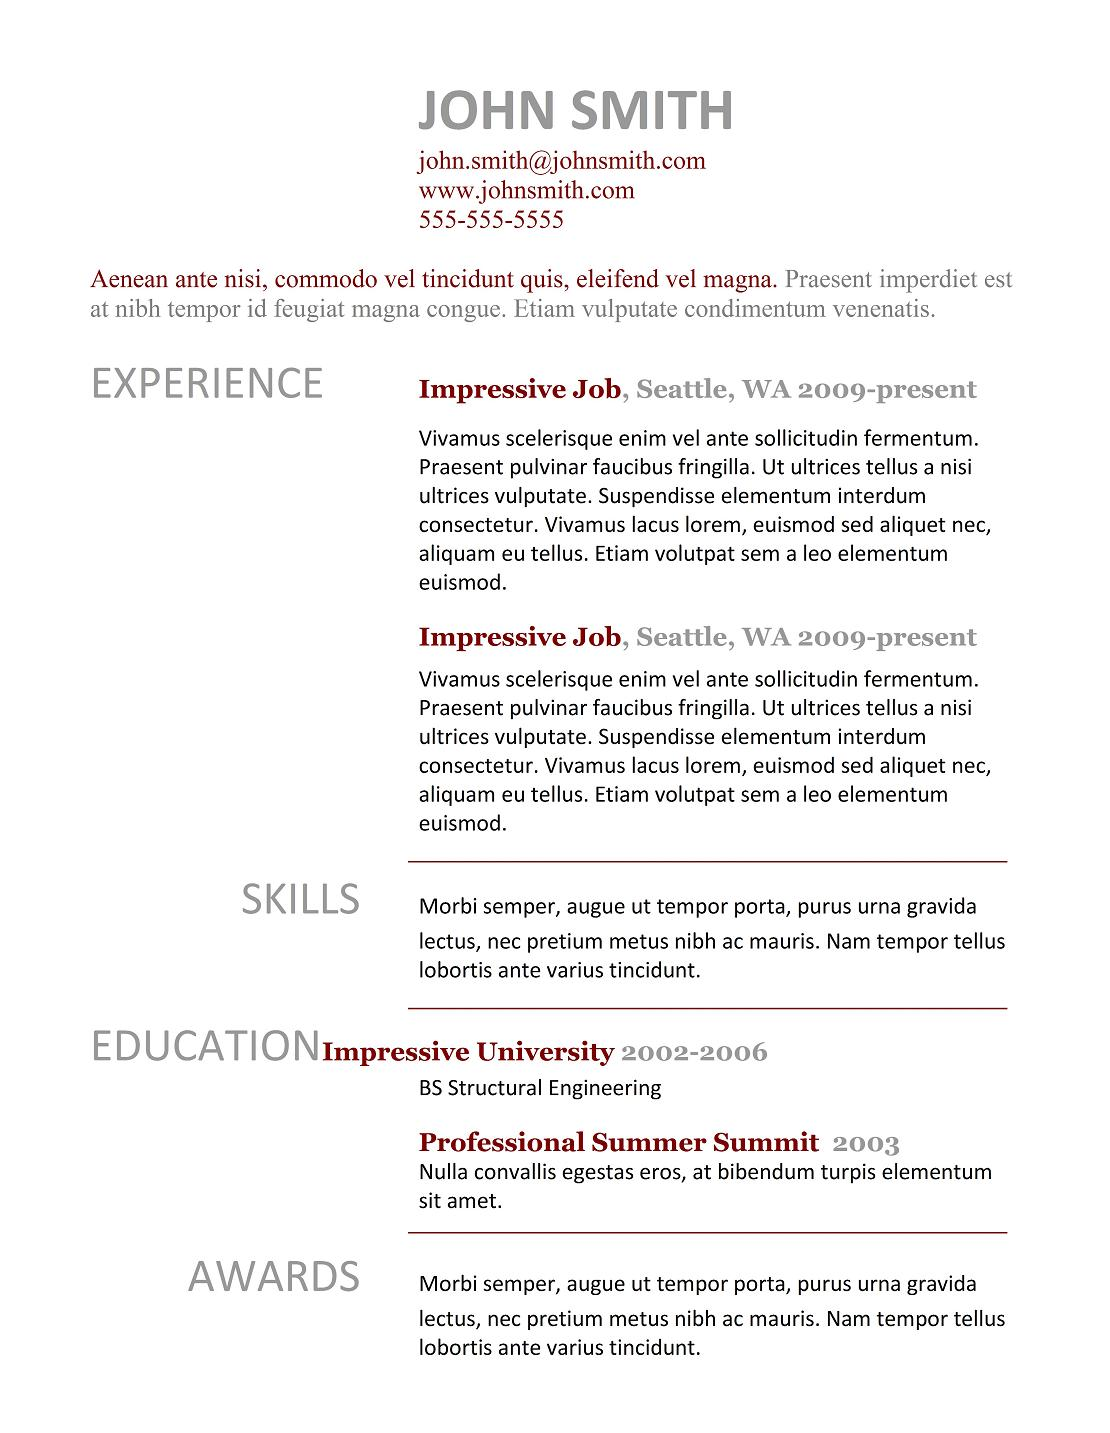 Resume Genius' Original Templates - Expert's Choice